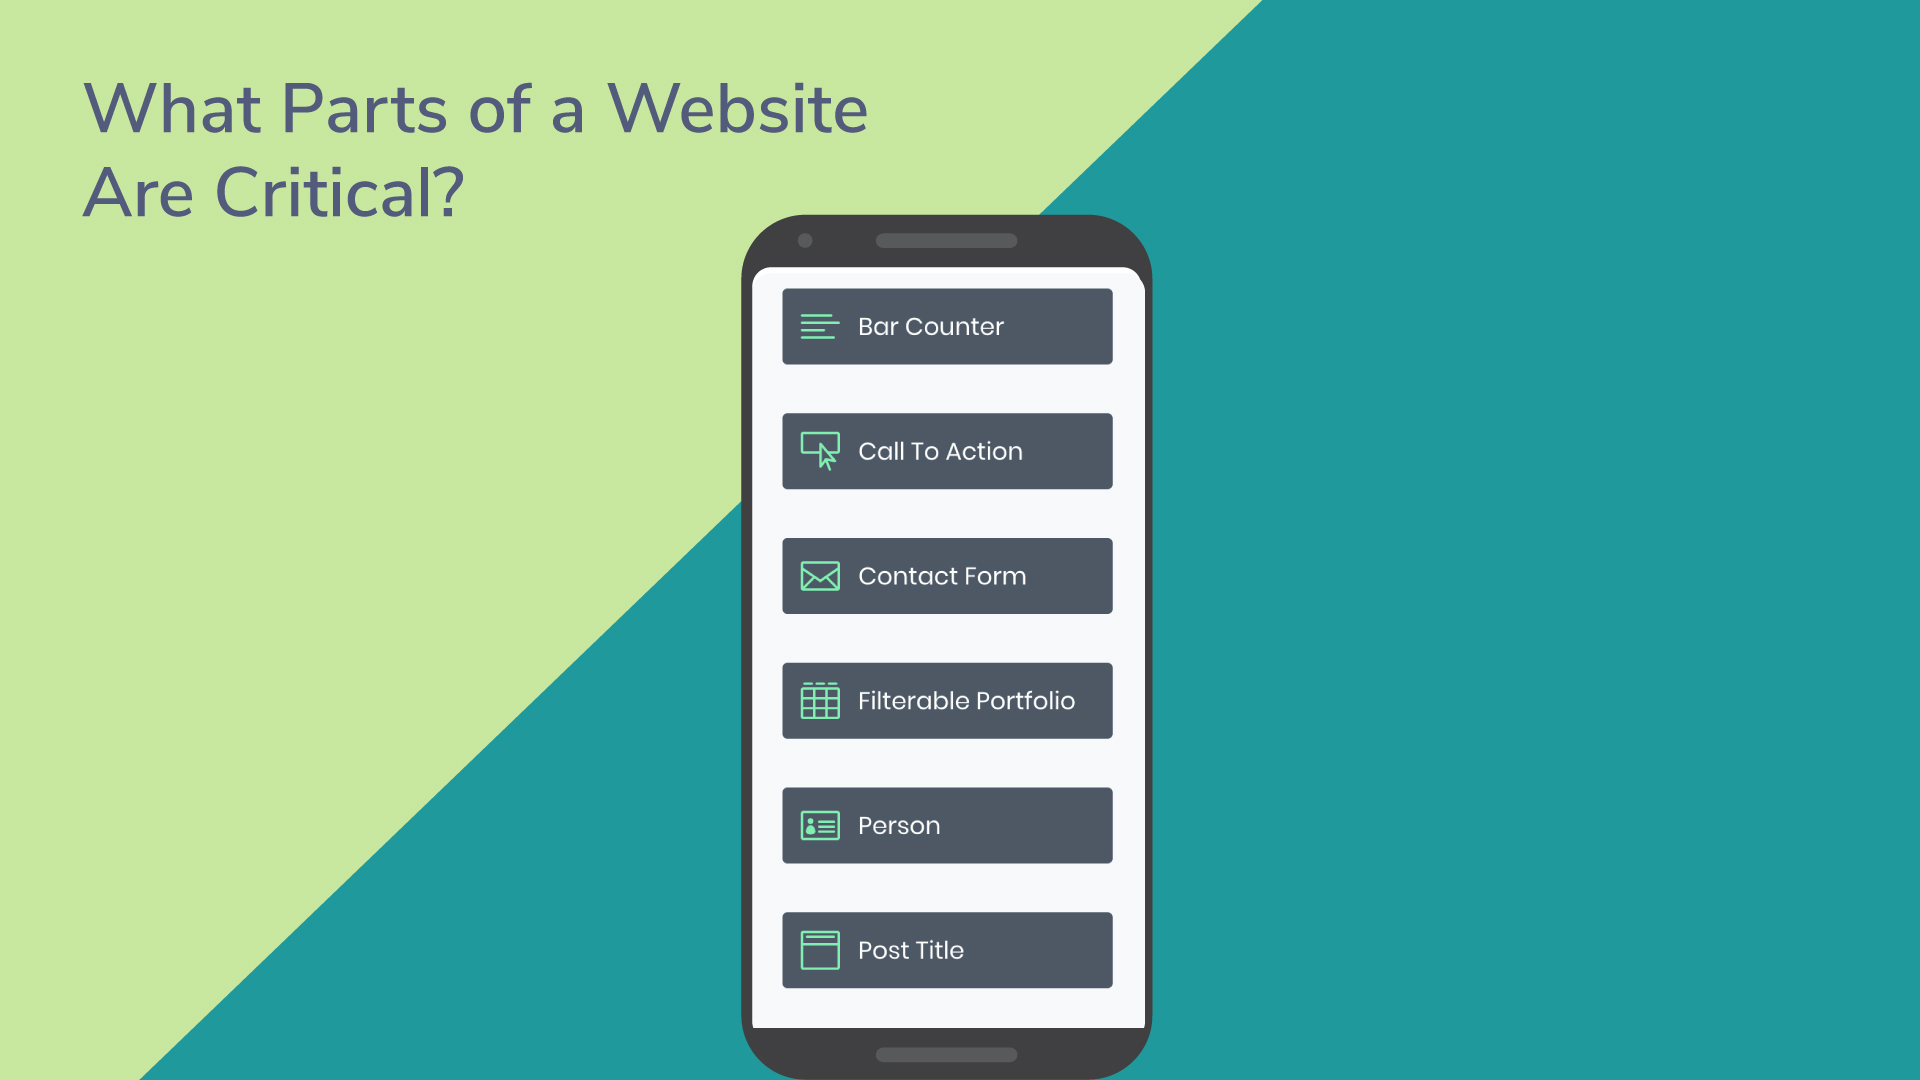 What parts of a website are critical